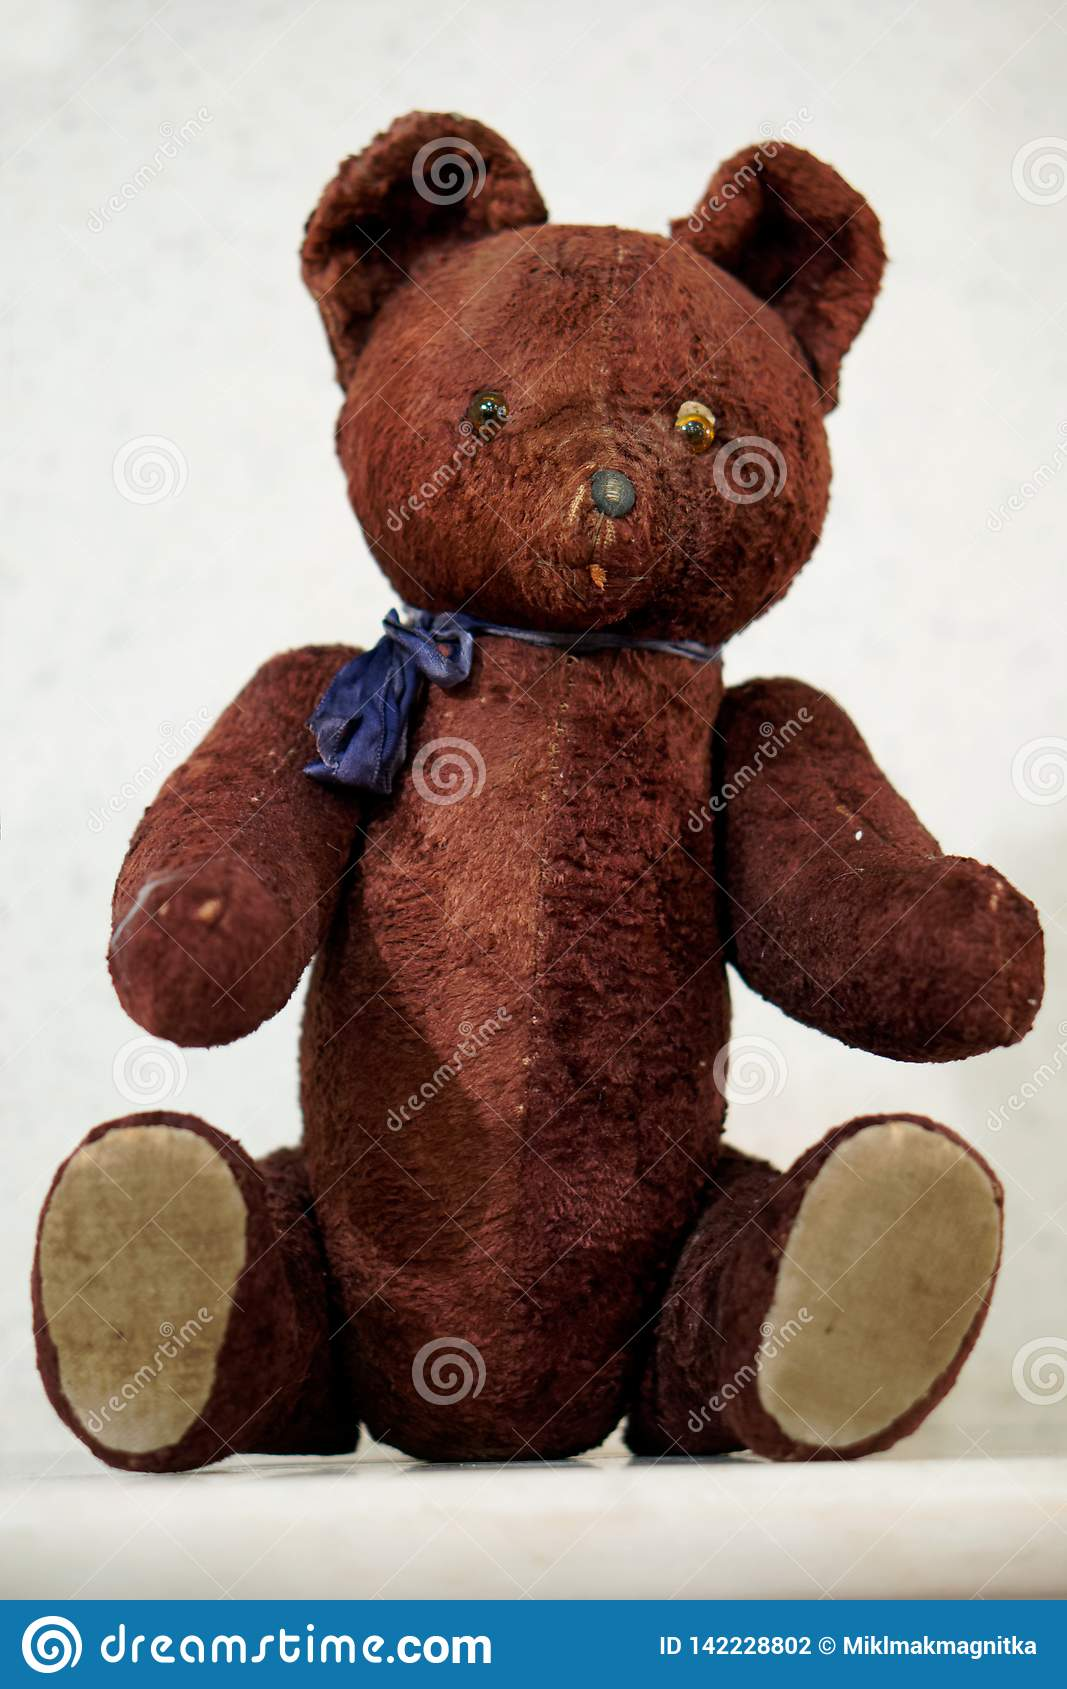 Old toy - a vintage plush brown bear sits on the mantel